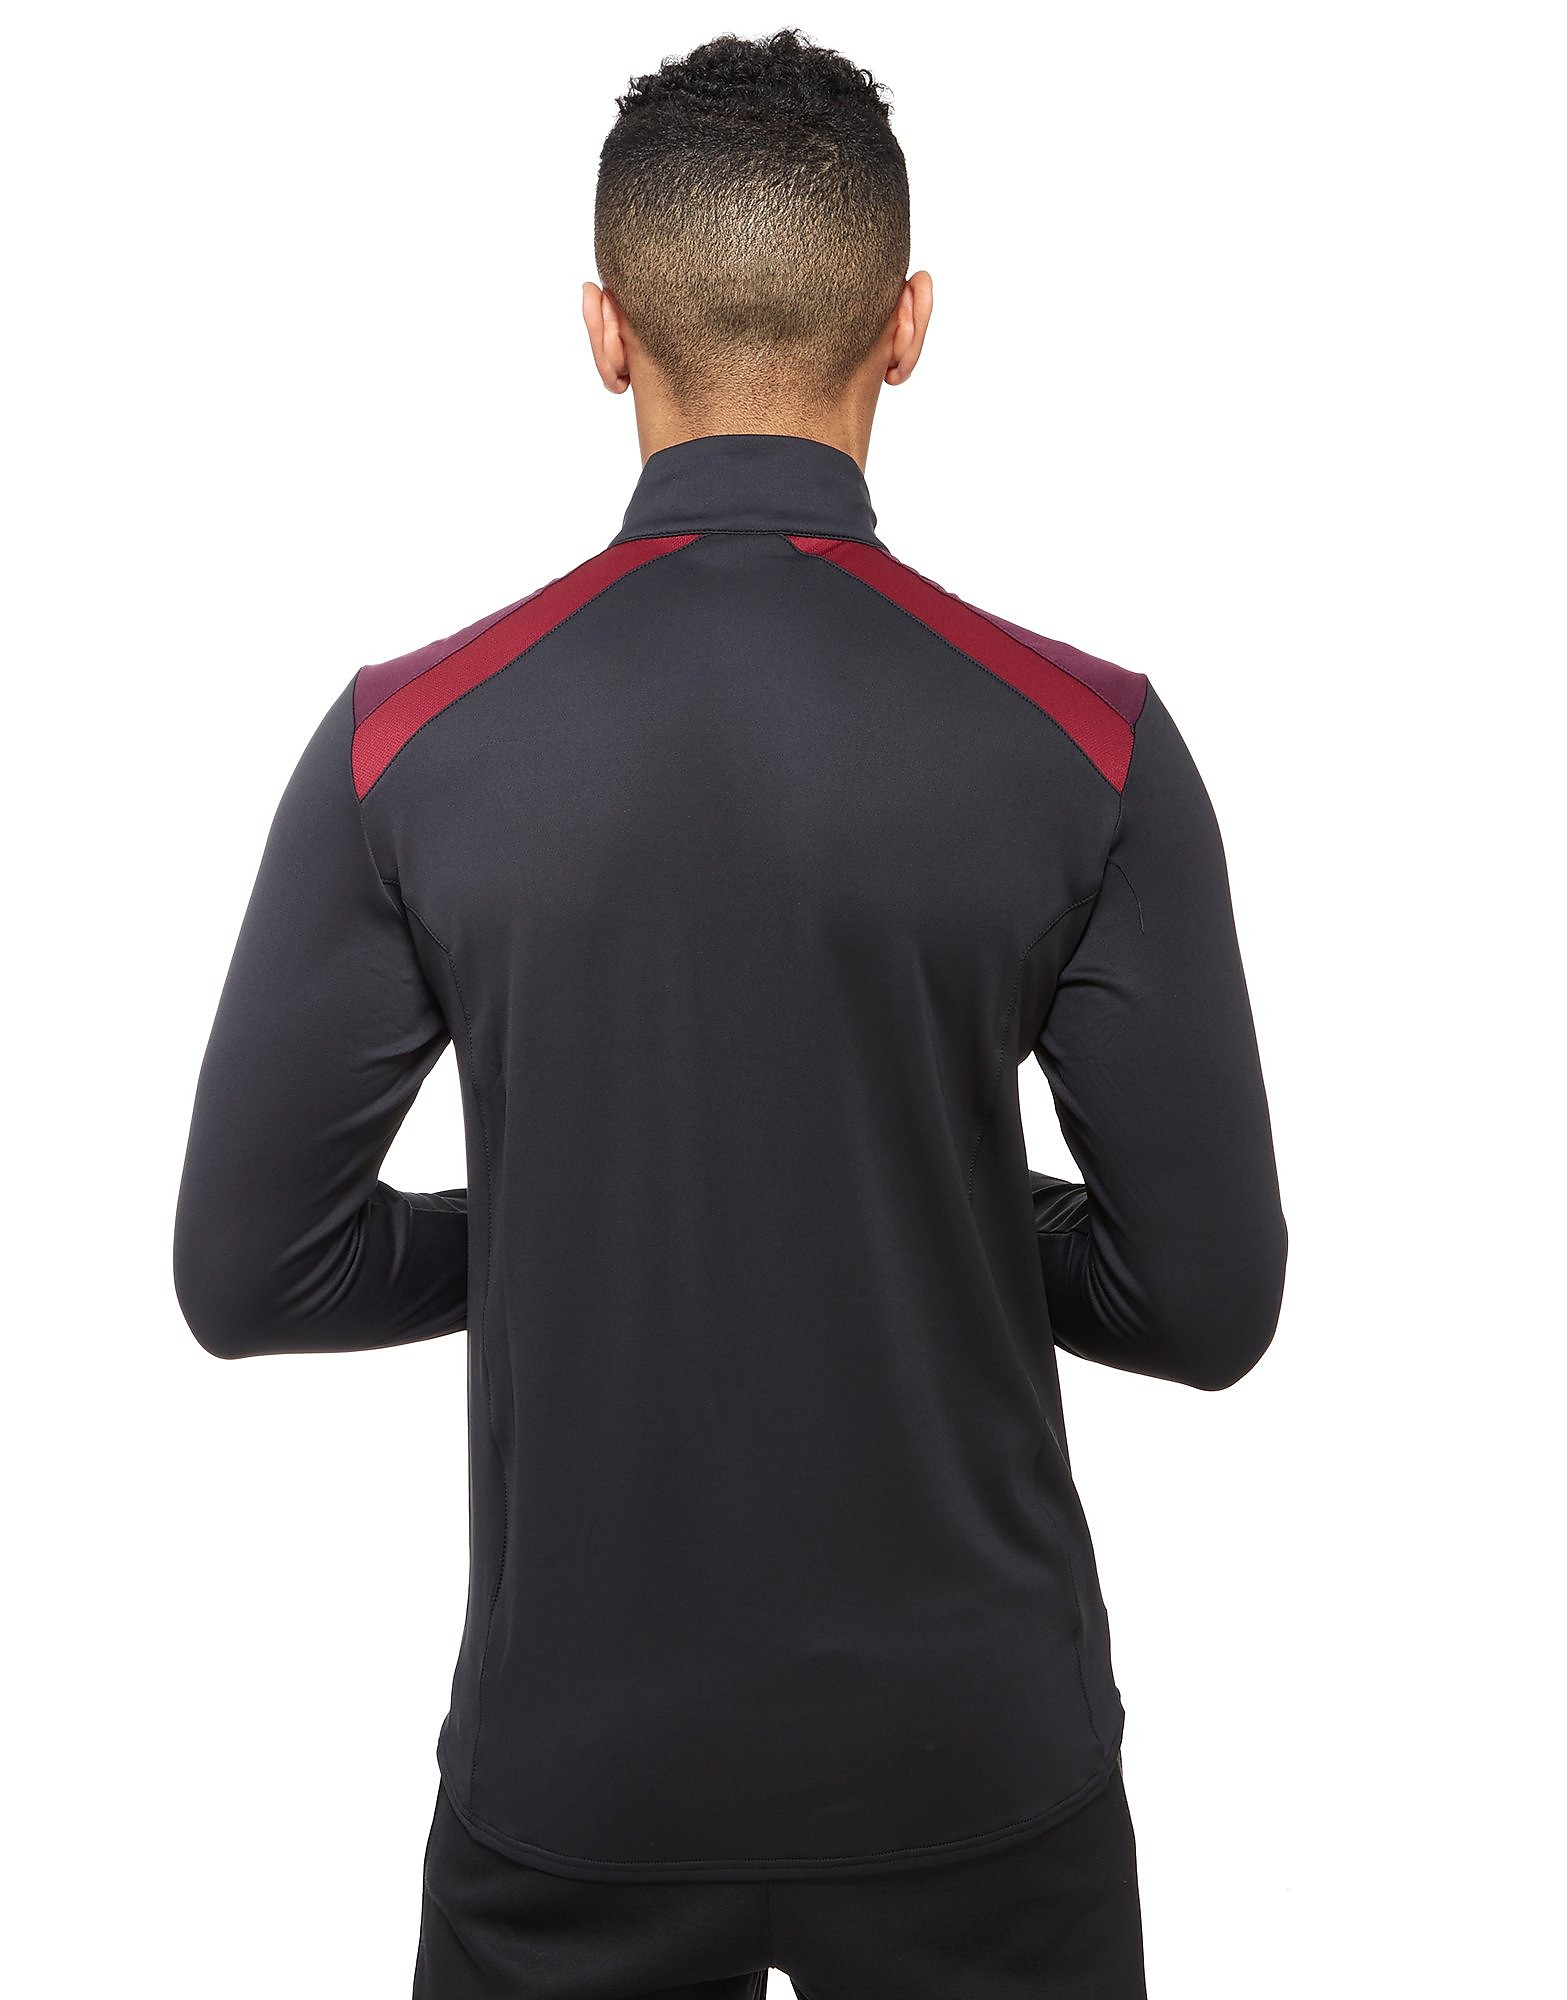 Umbro West Ham United 1/2 Zip Training Top